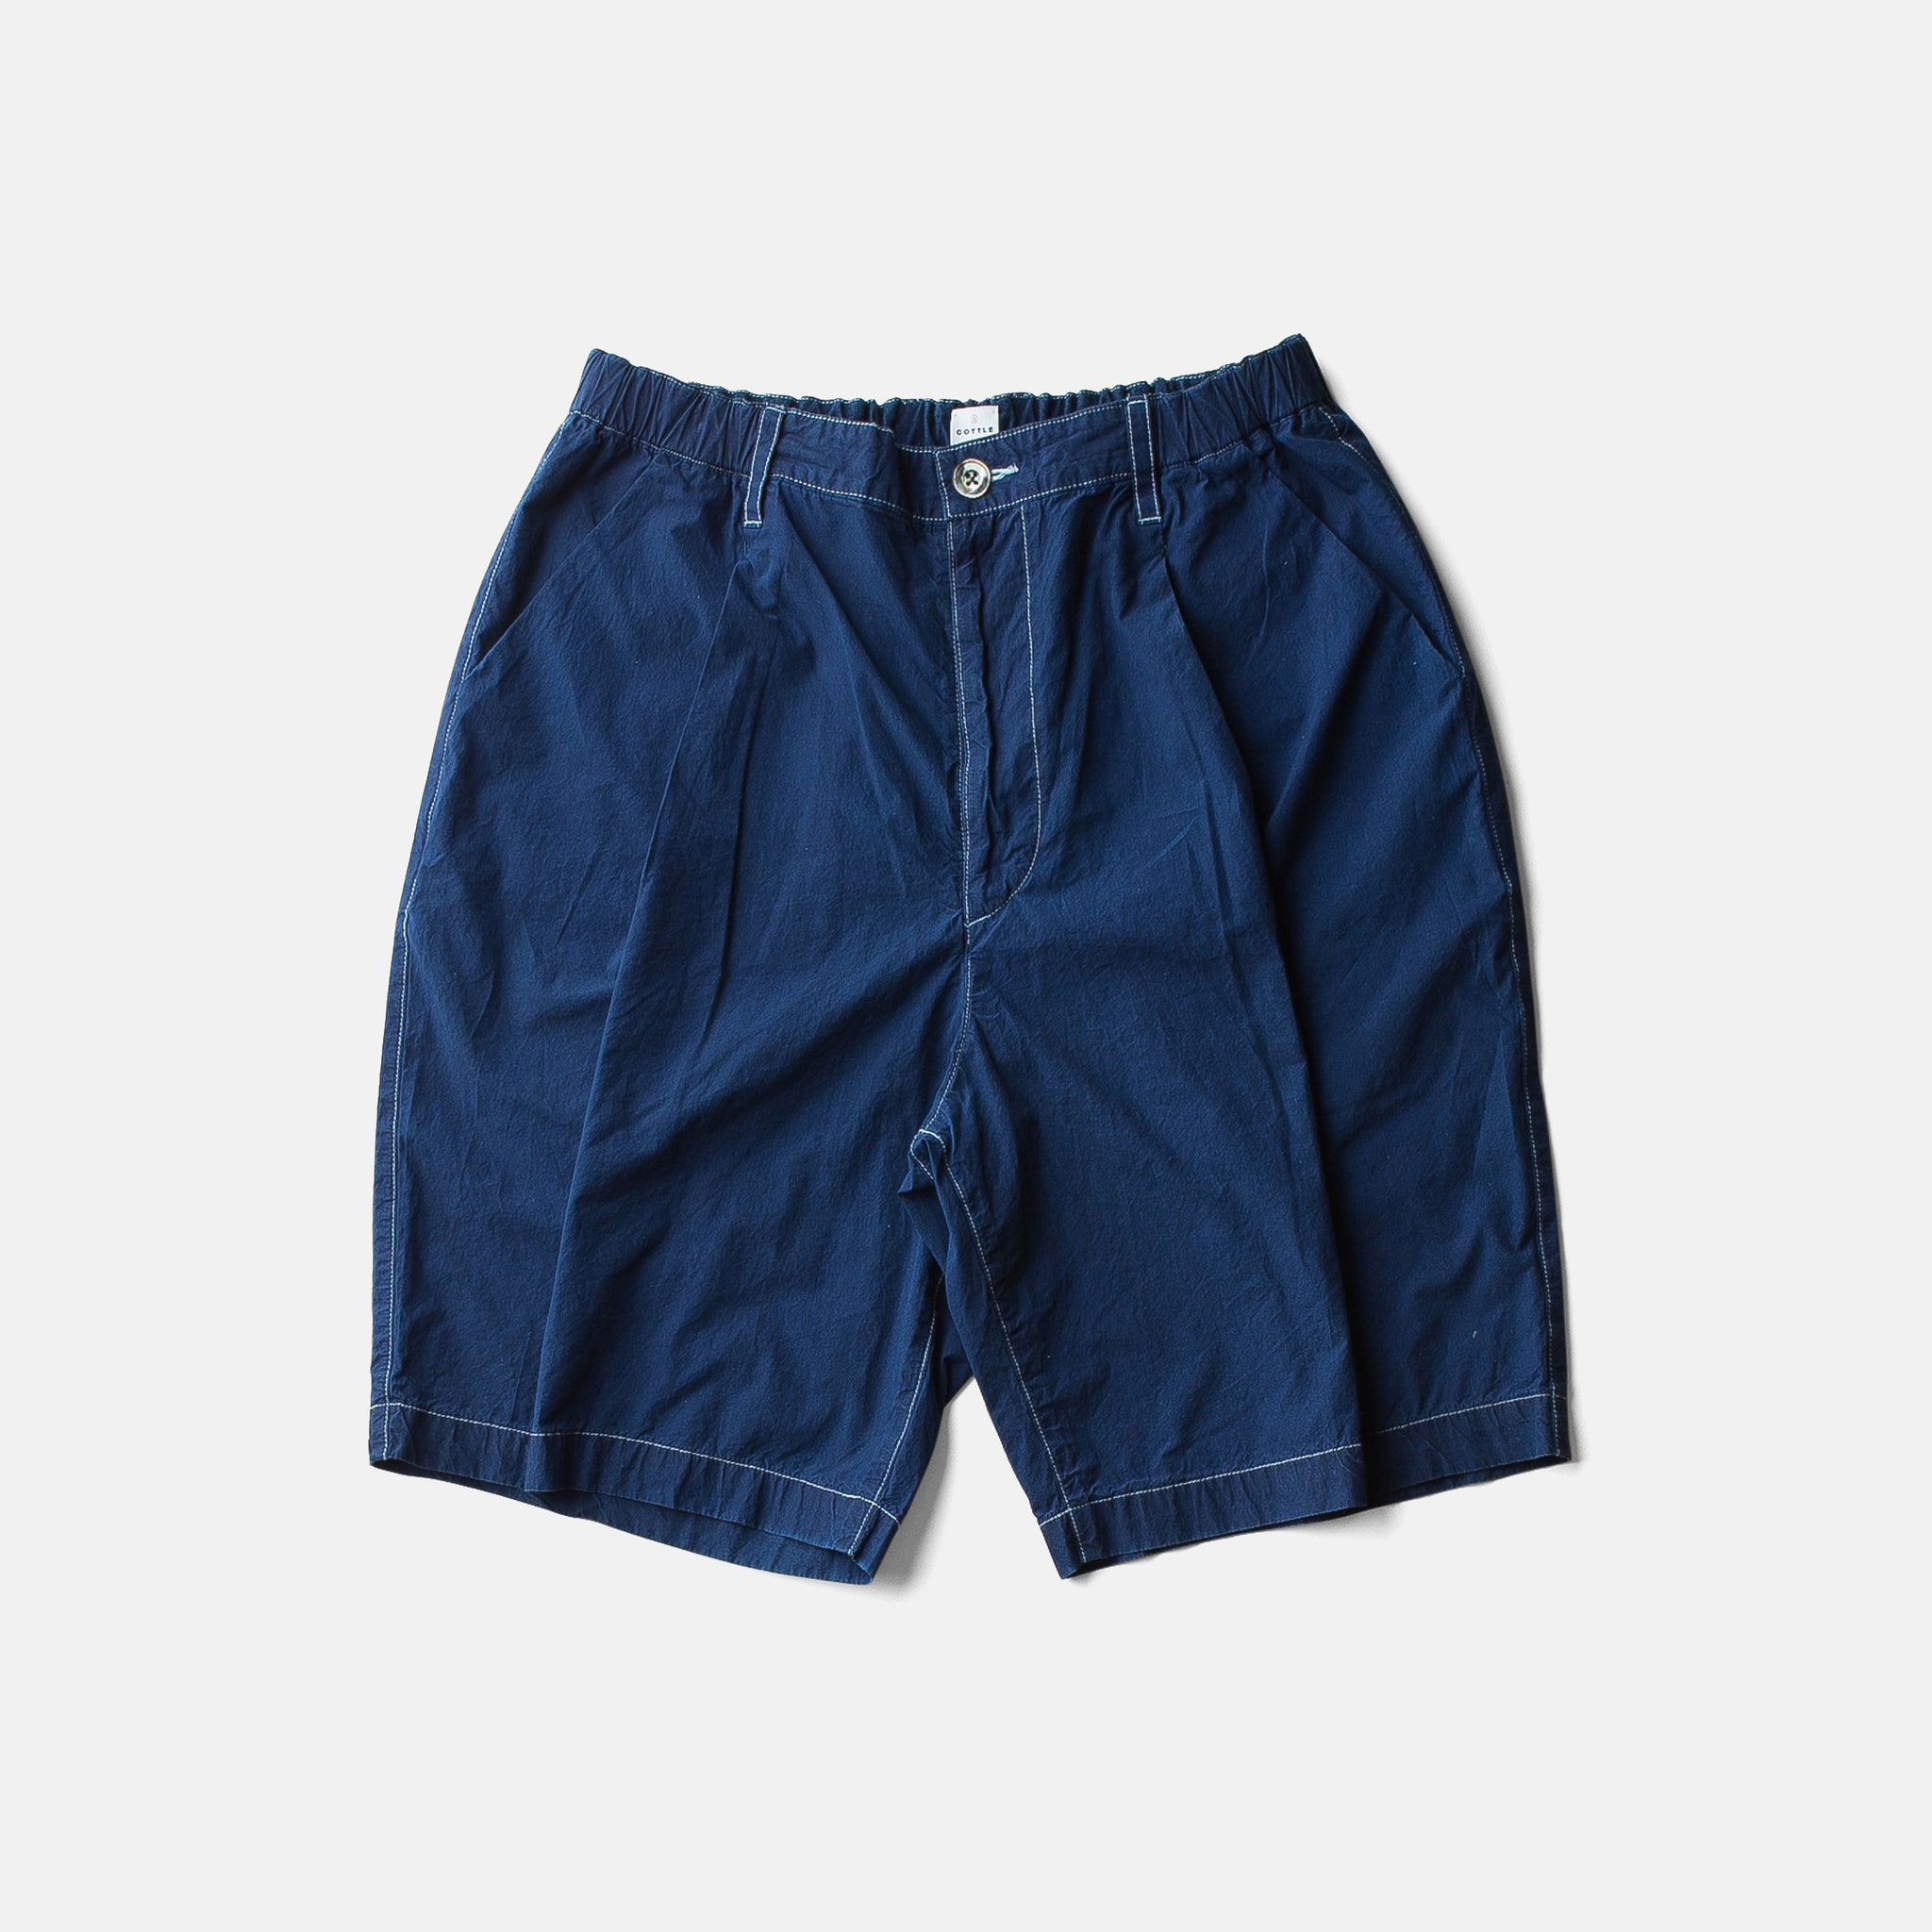 ZEN LOAN TACTAC SHORTSーAUTHENTIC INDIGO